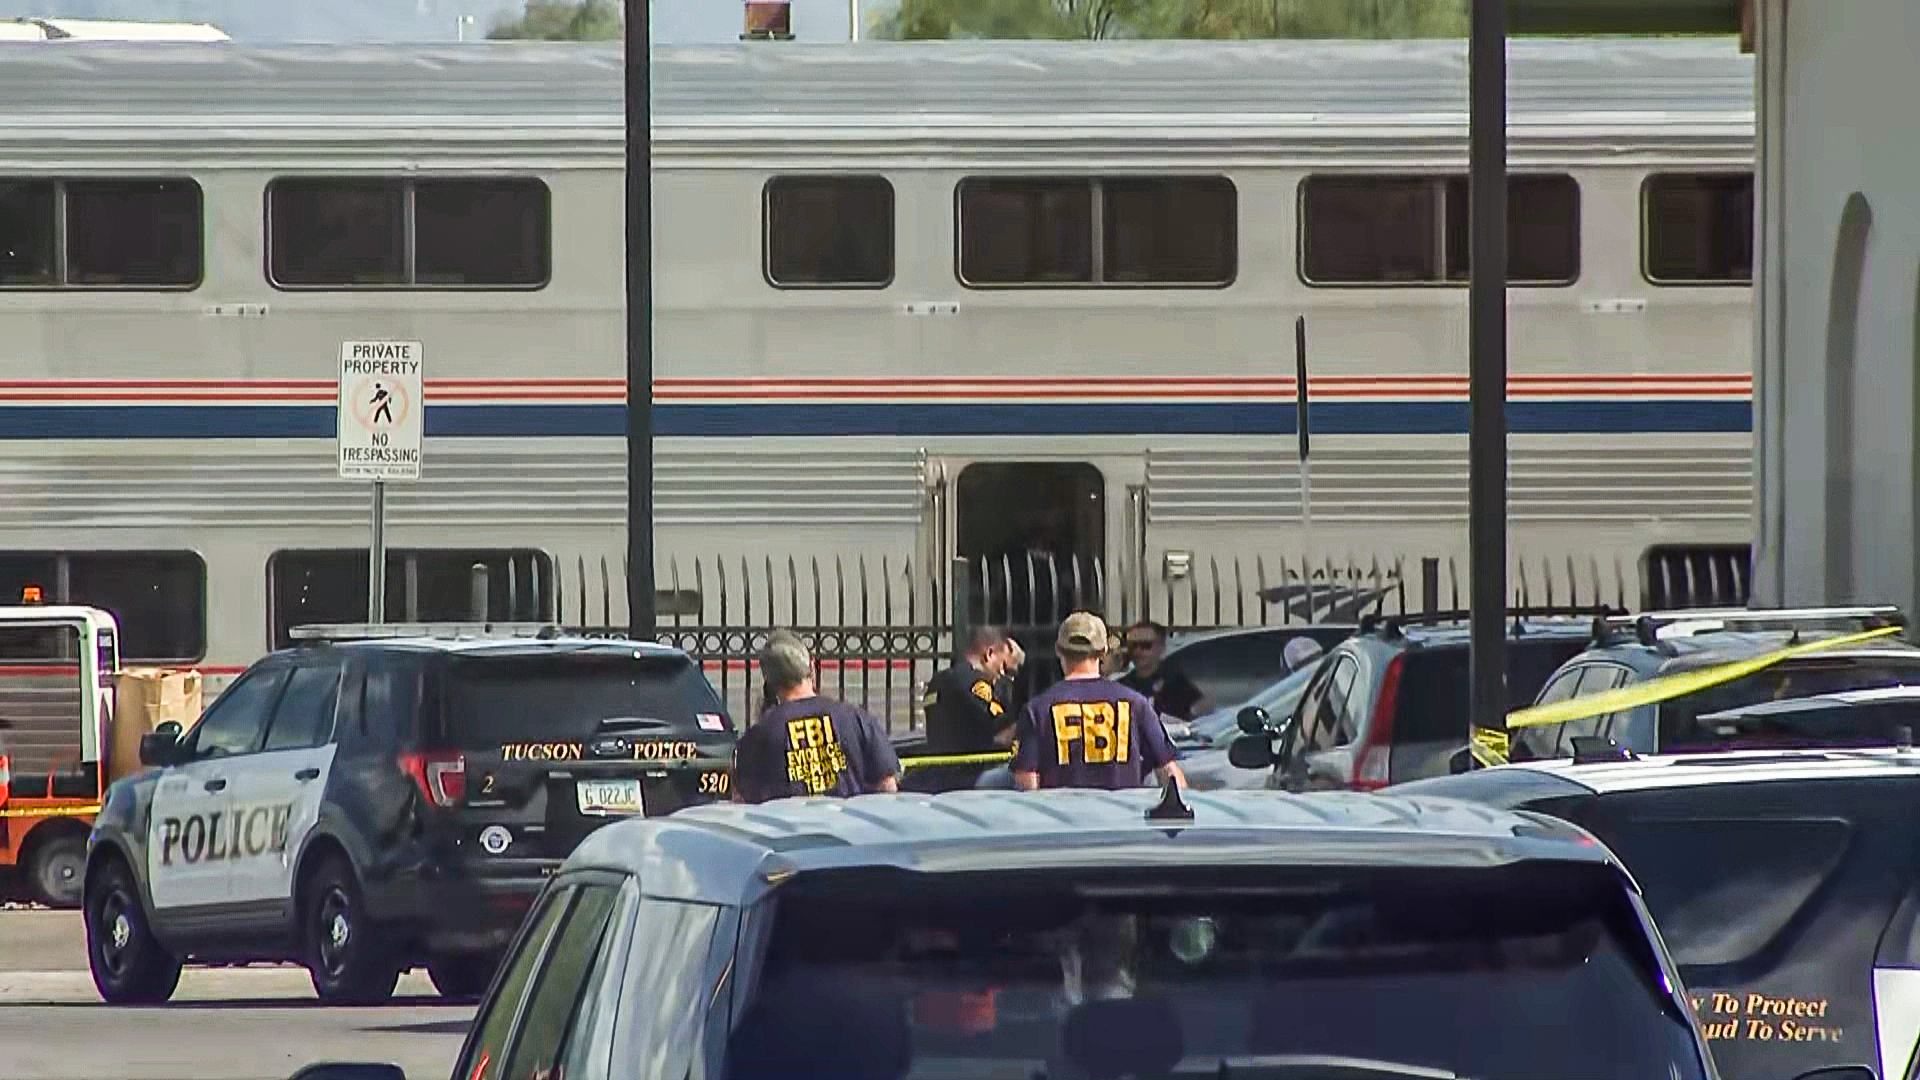 DEA agent killed, 2 law enforcement officers injured in shooting on Amtrak train in Tucson